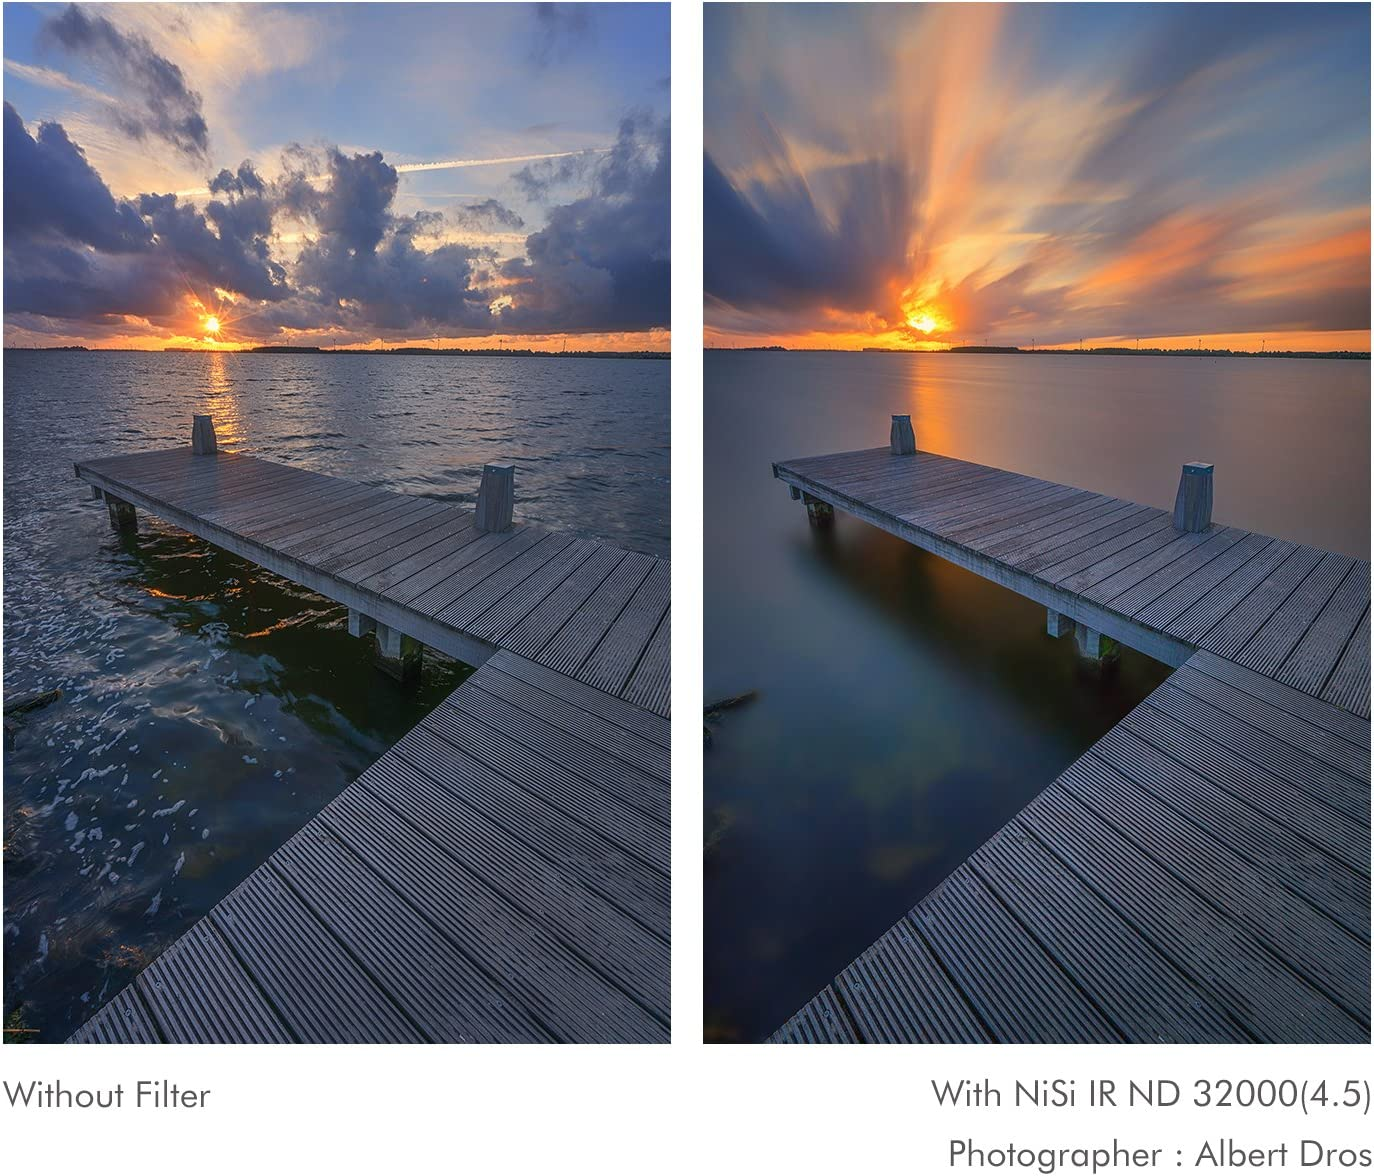 77mm 4.5 NiSi IR ND32000 Filters - Neutral Density Filter 15 Stops